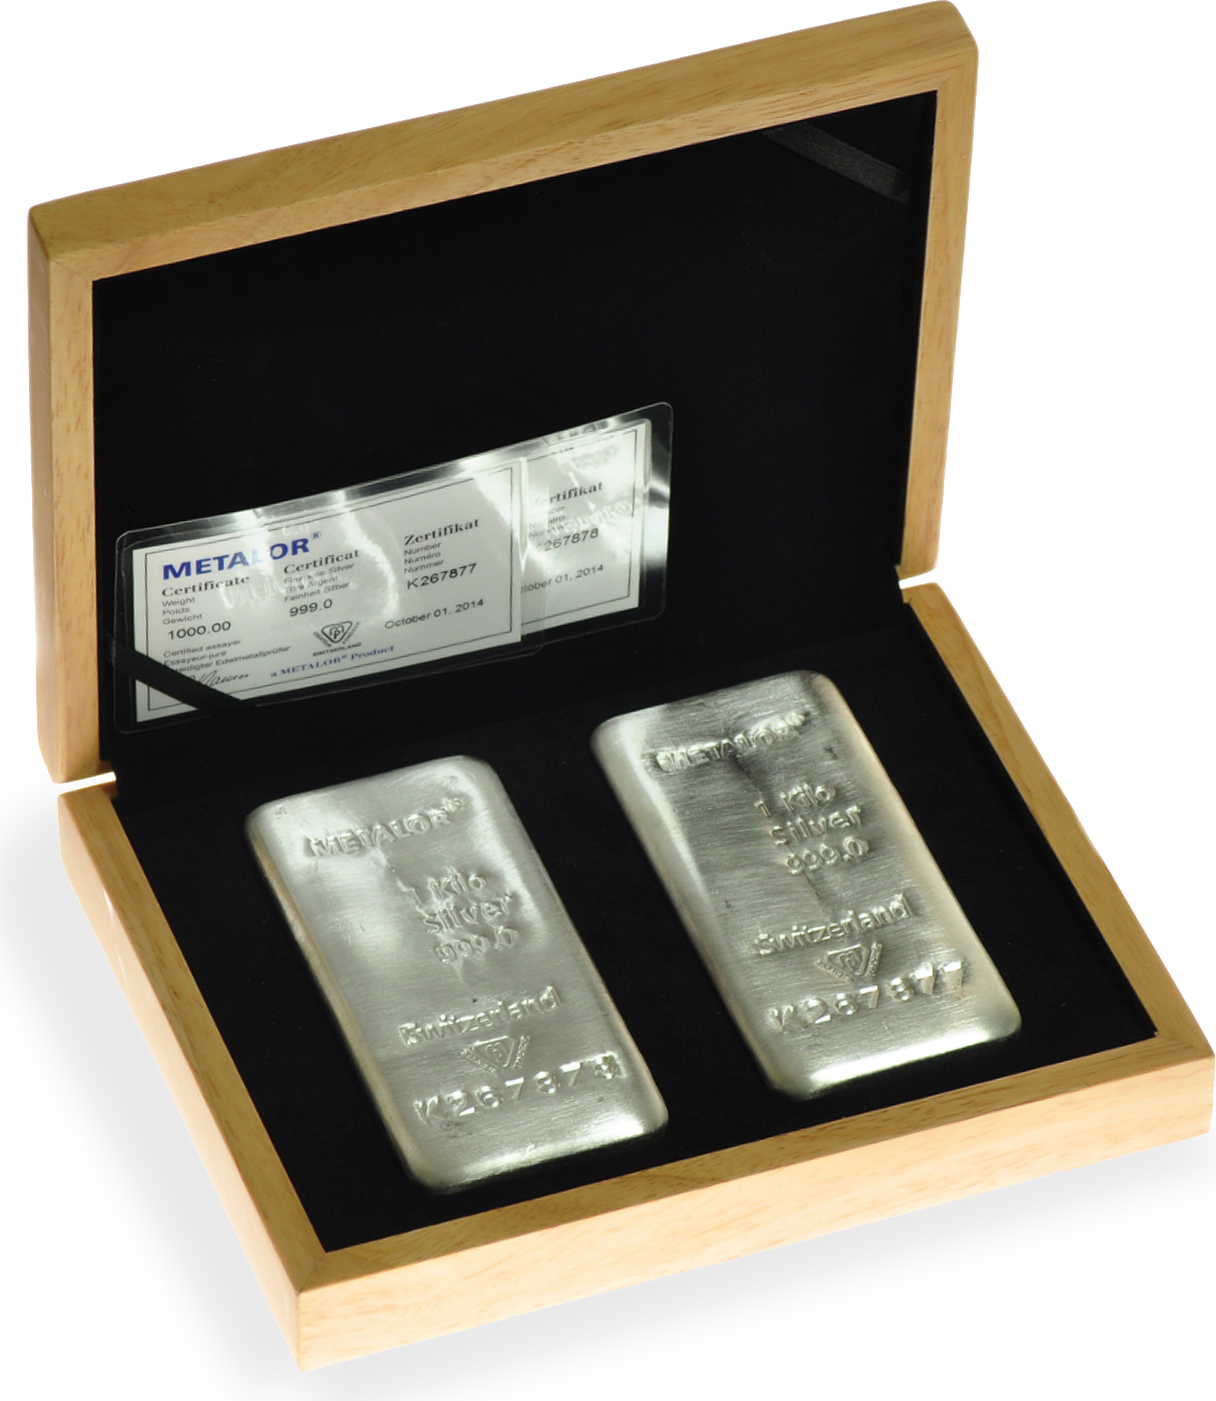 Large Oak Gift Box 2 X Metalor 1kg Gold Or Silver Bars